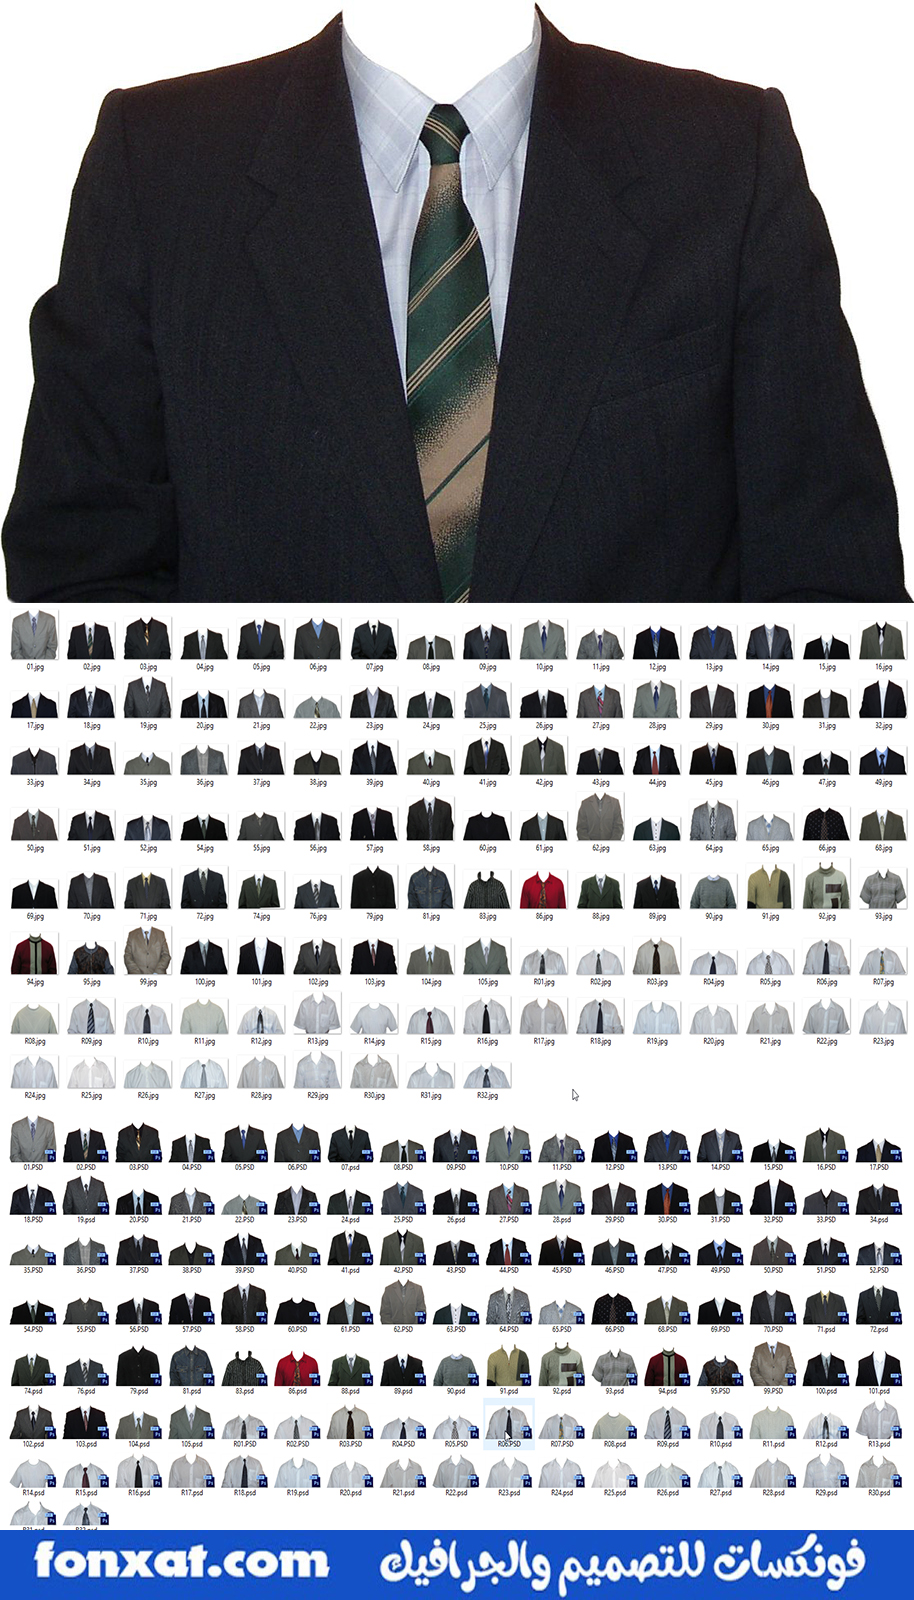 Men's suit with highest psd and jpg